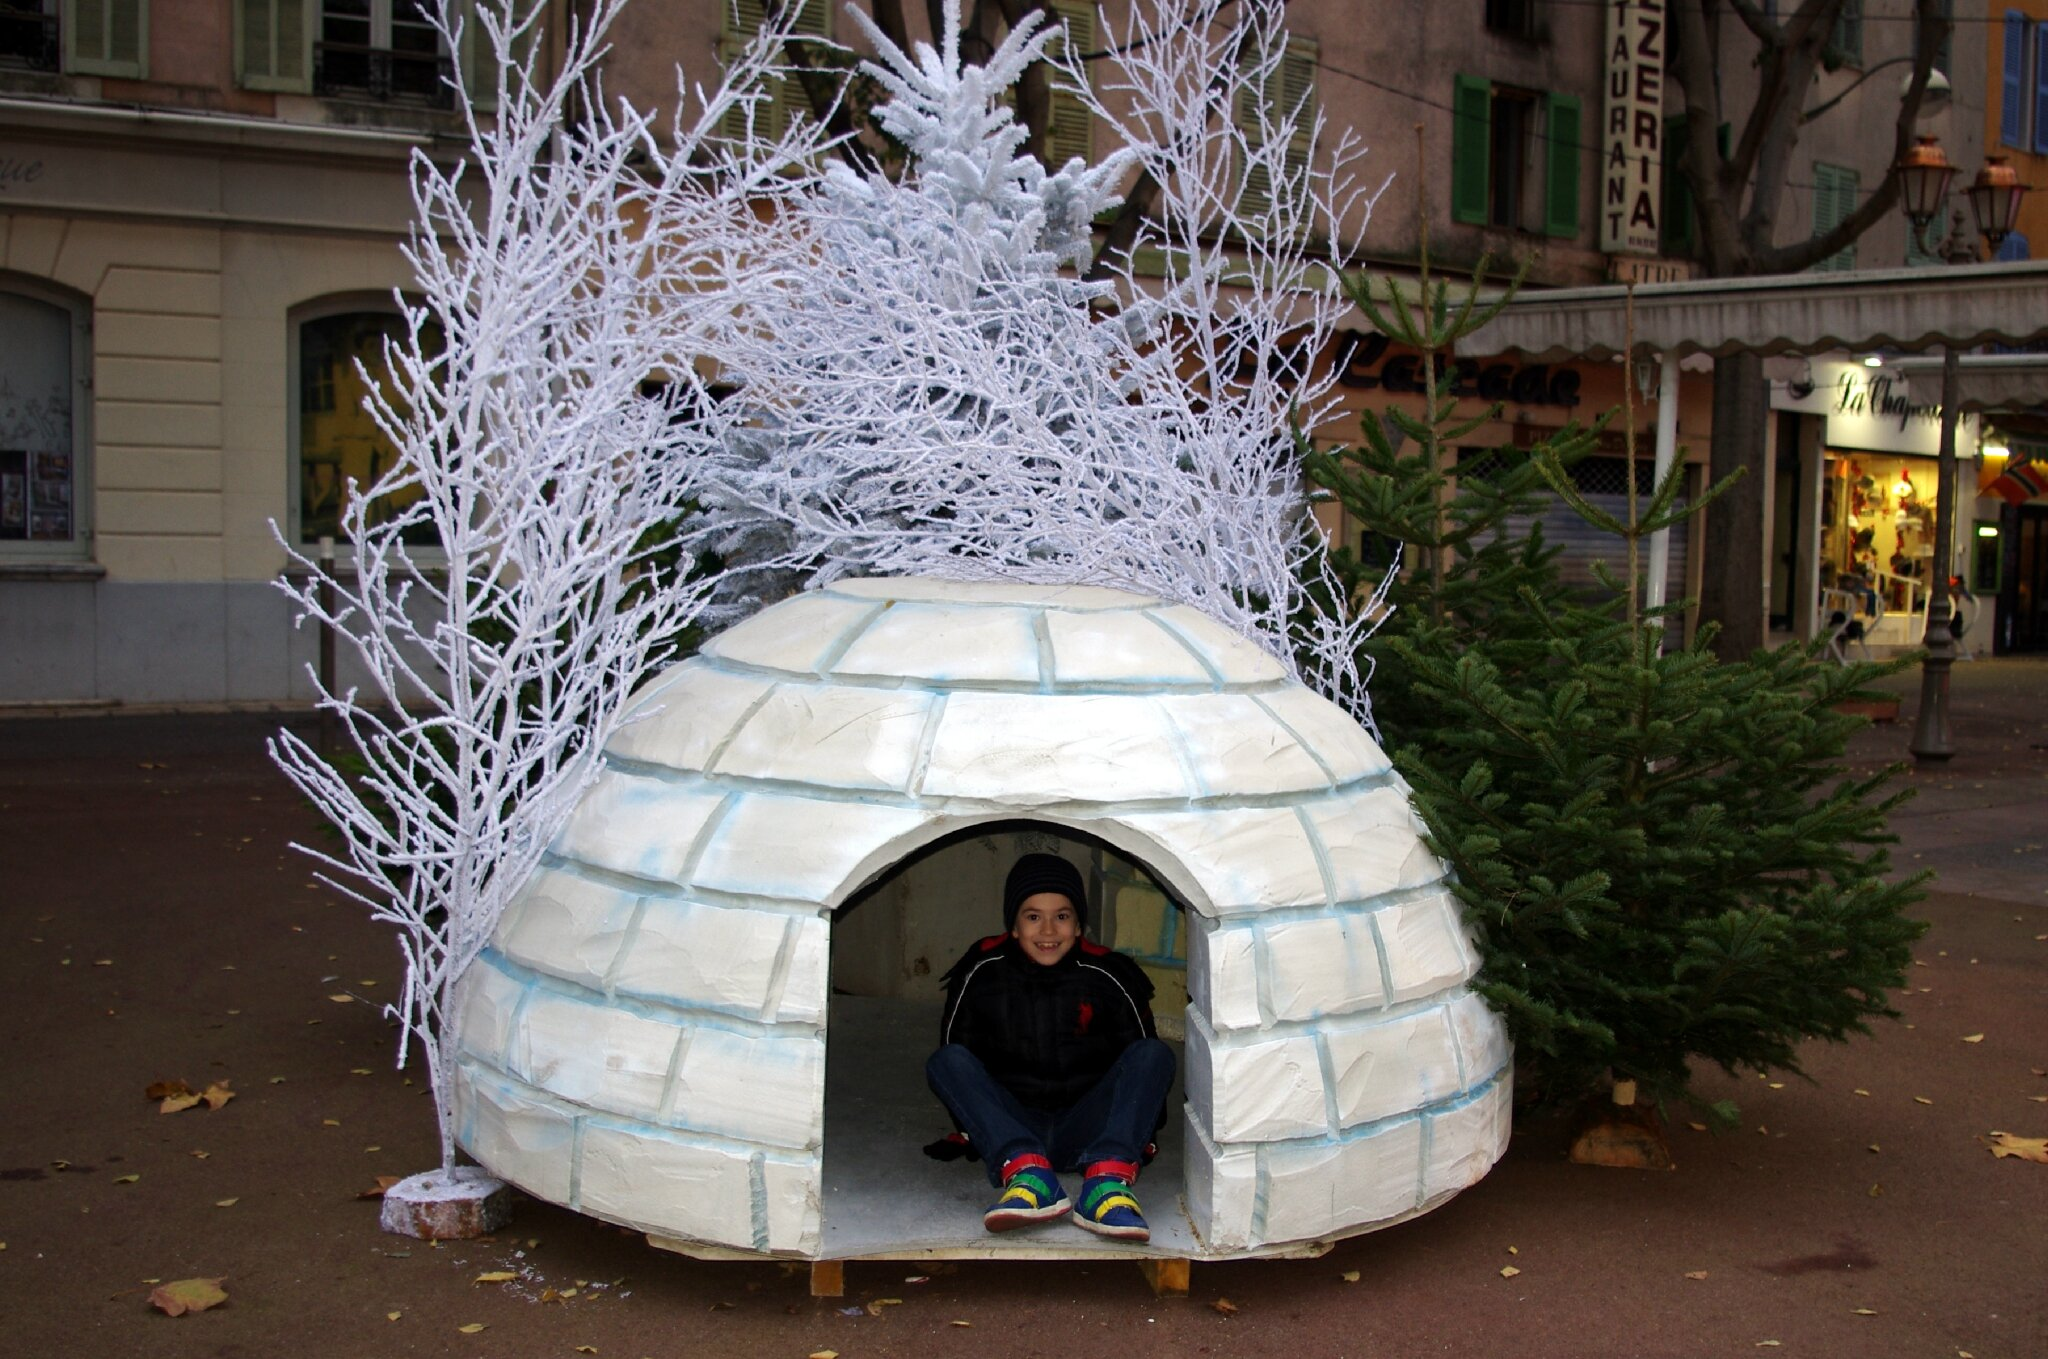 F te de la b che de la commune libre du safranier le for Fabrication de decoration de noel